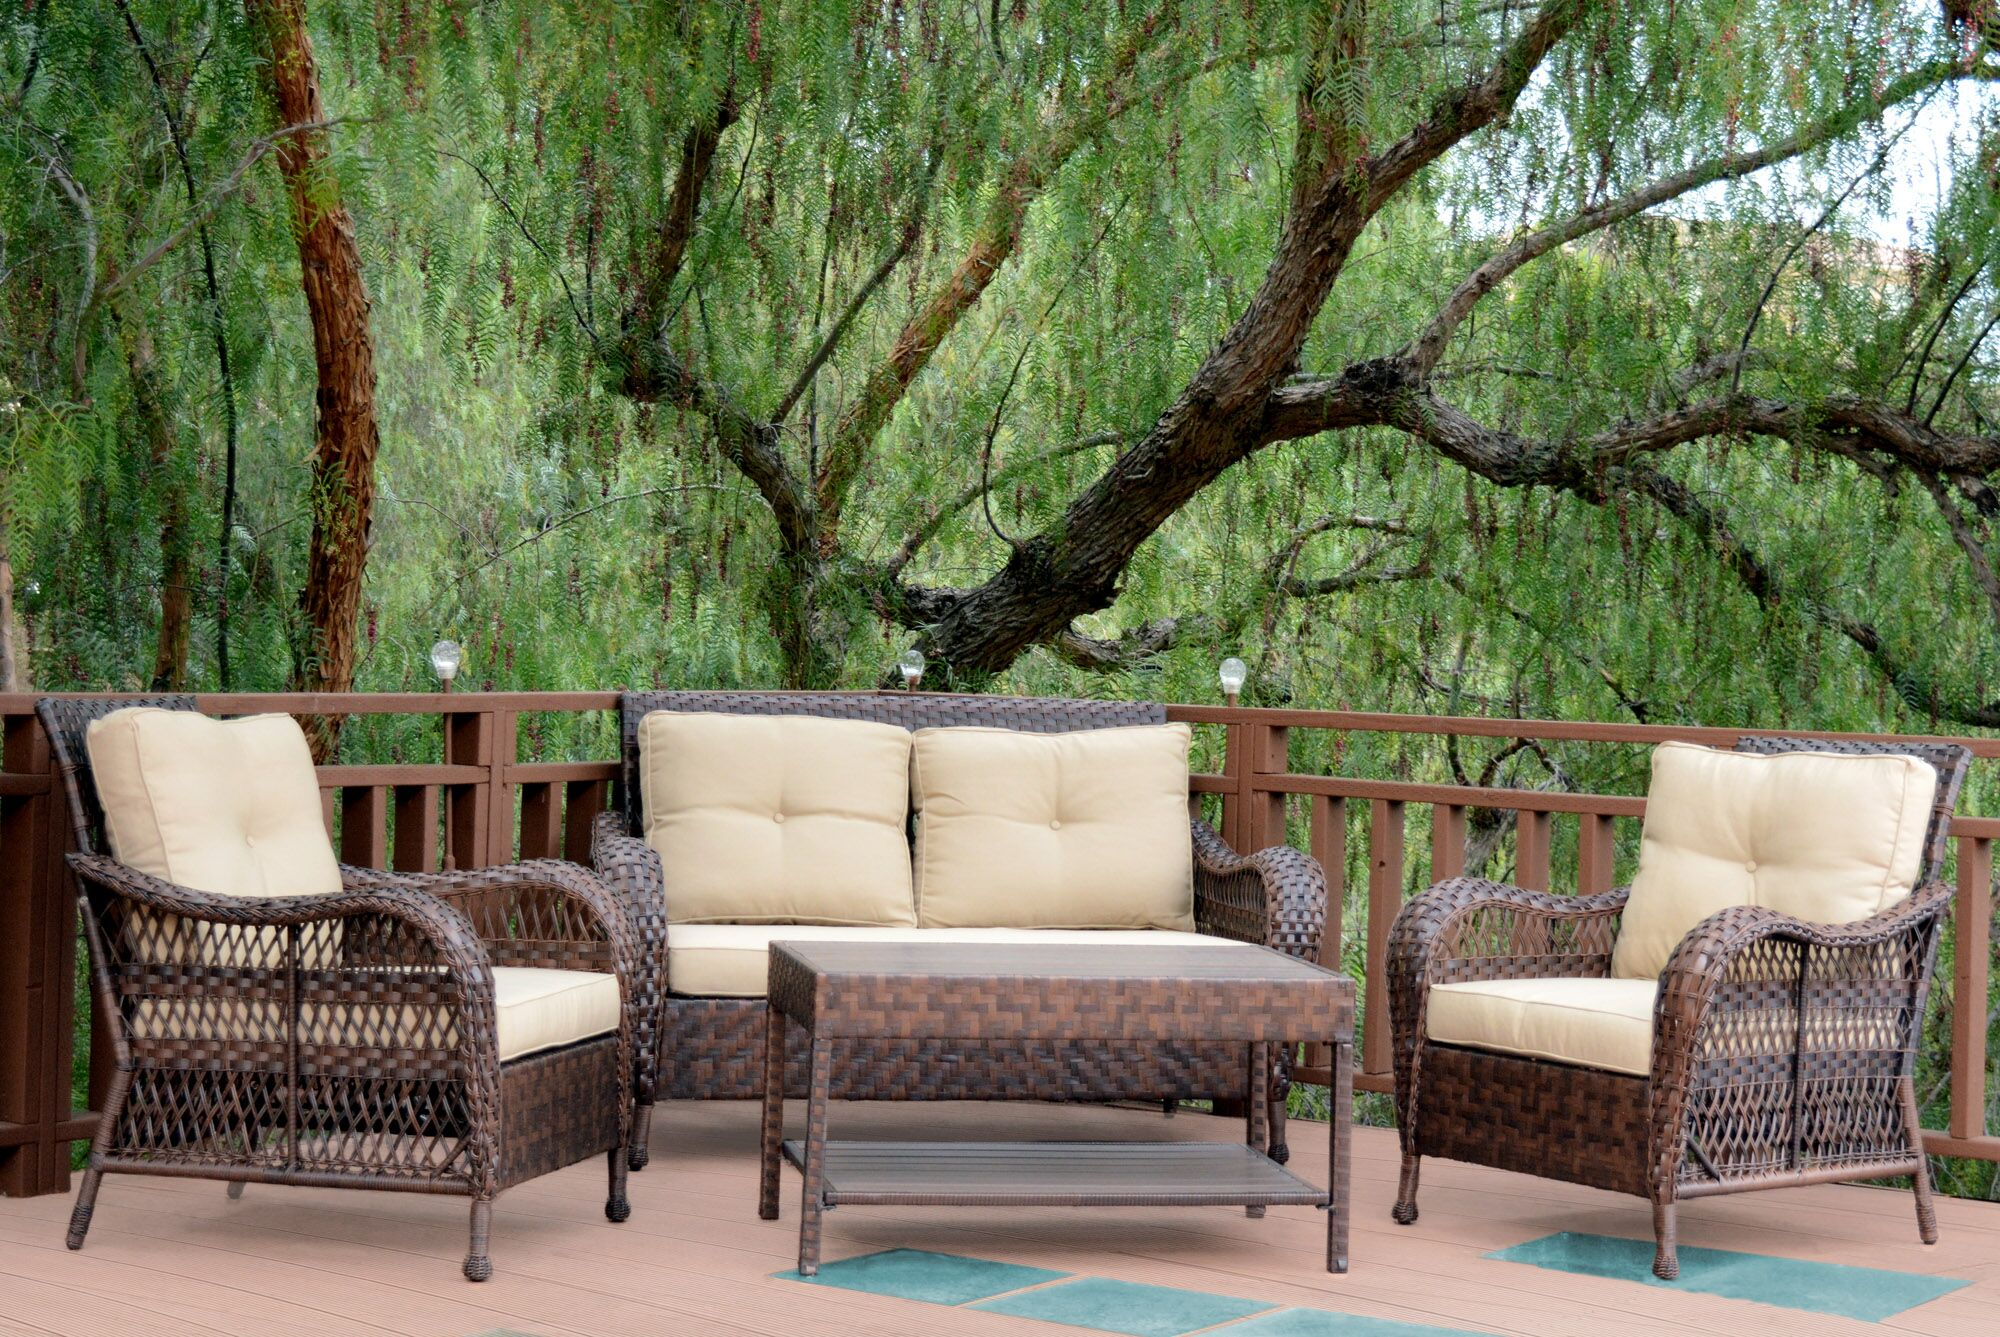 Cromwell 4 Piece Sofa Set with Cushions Color: Tan